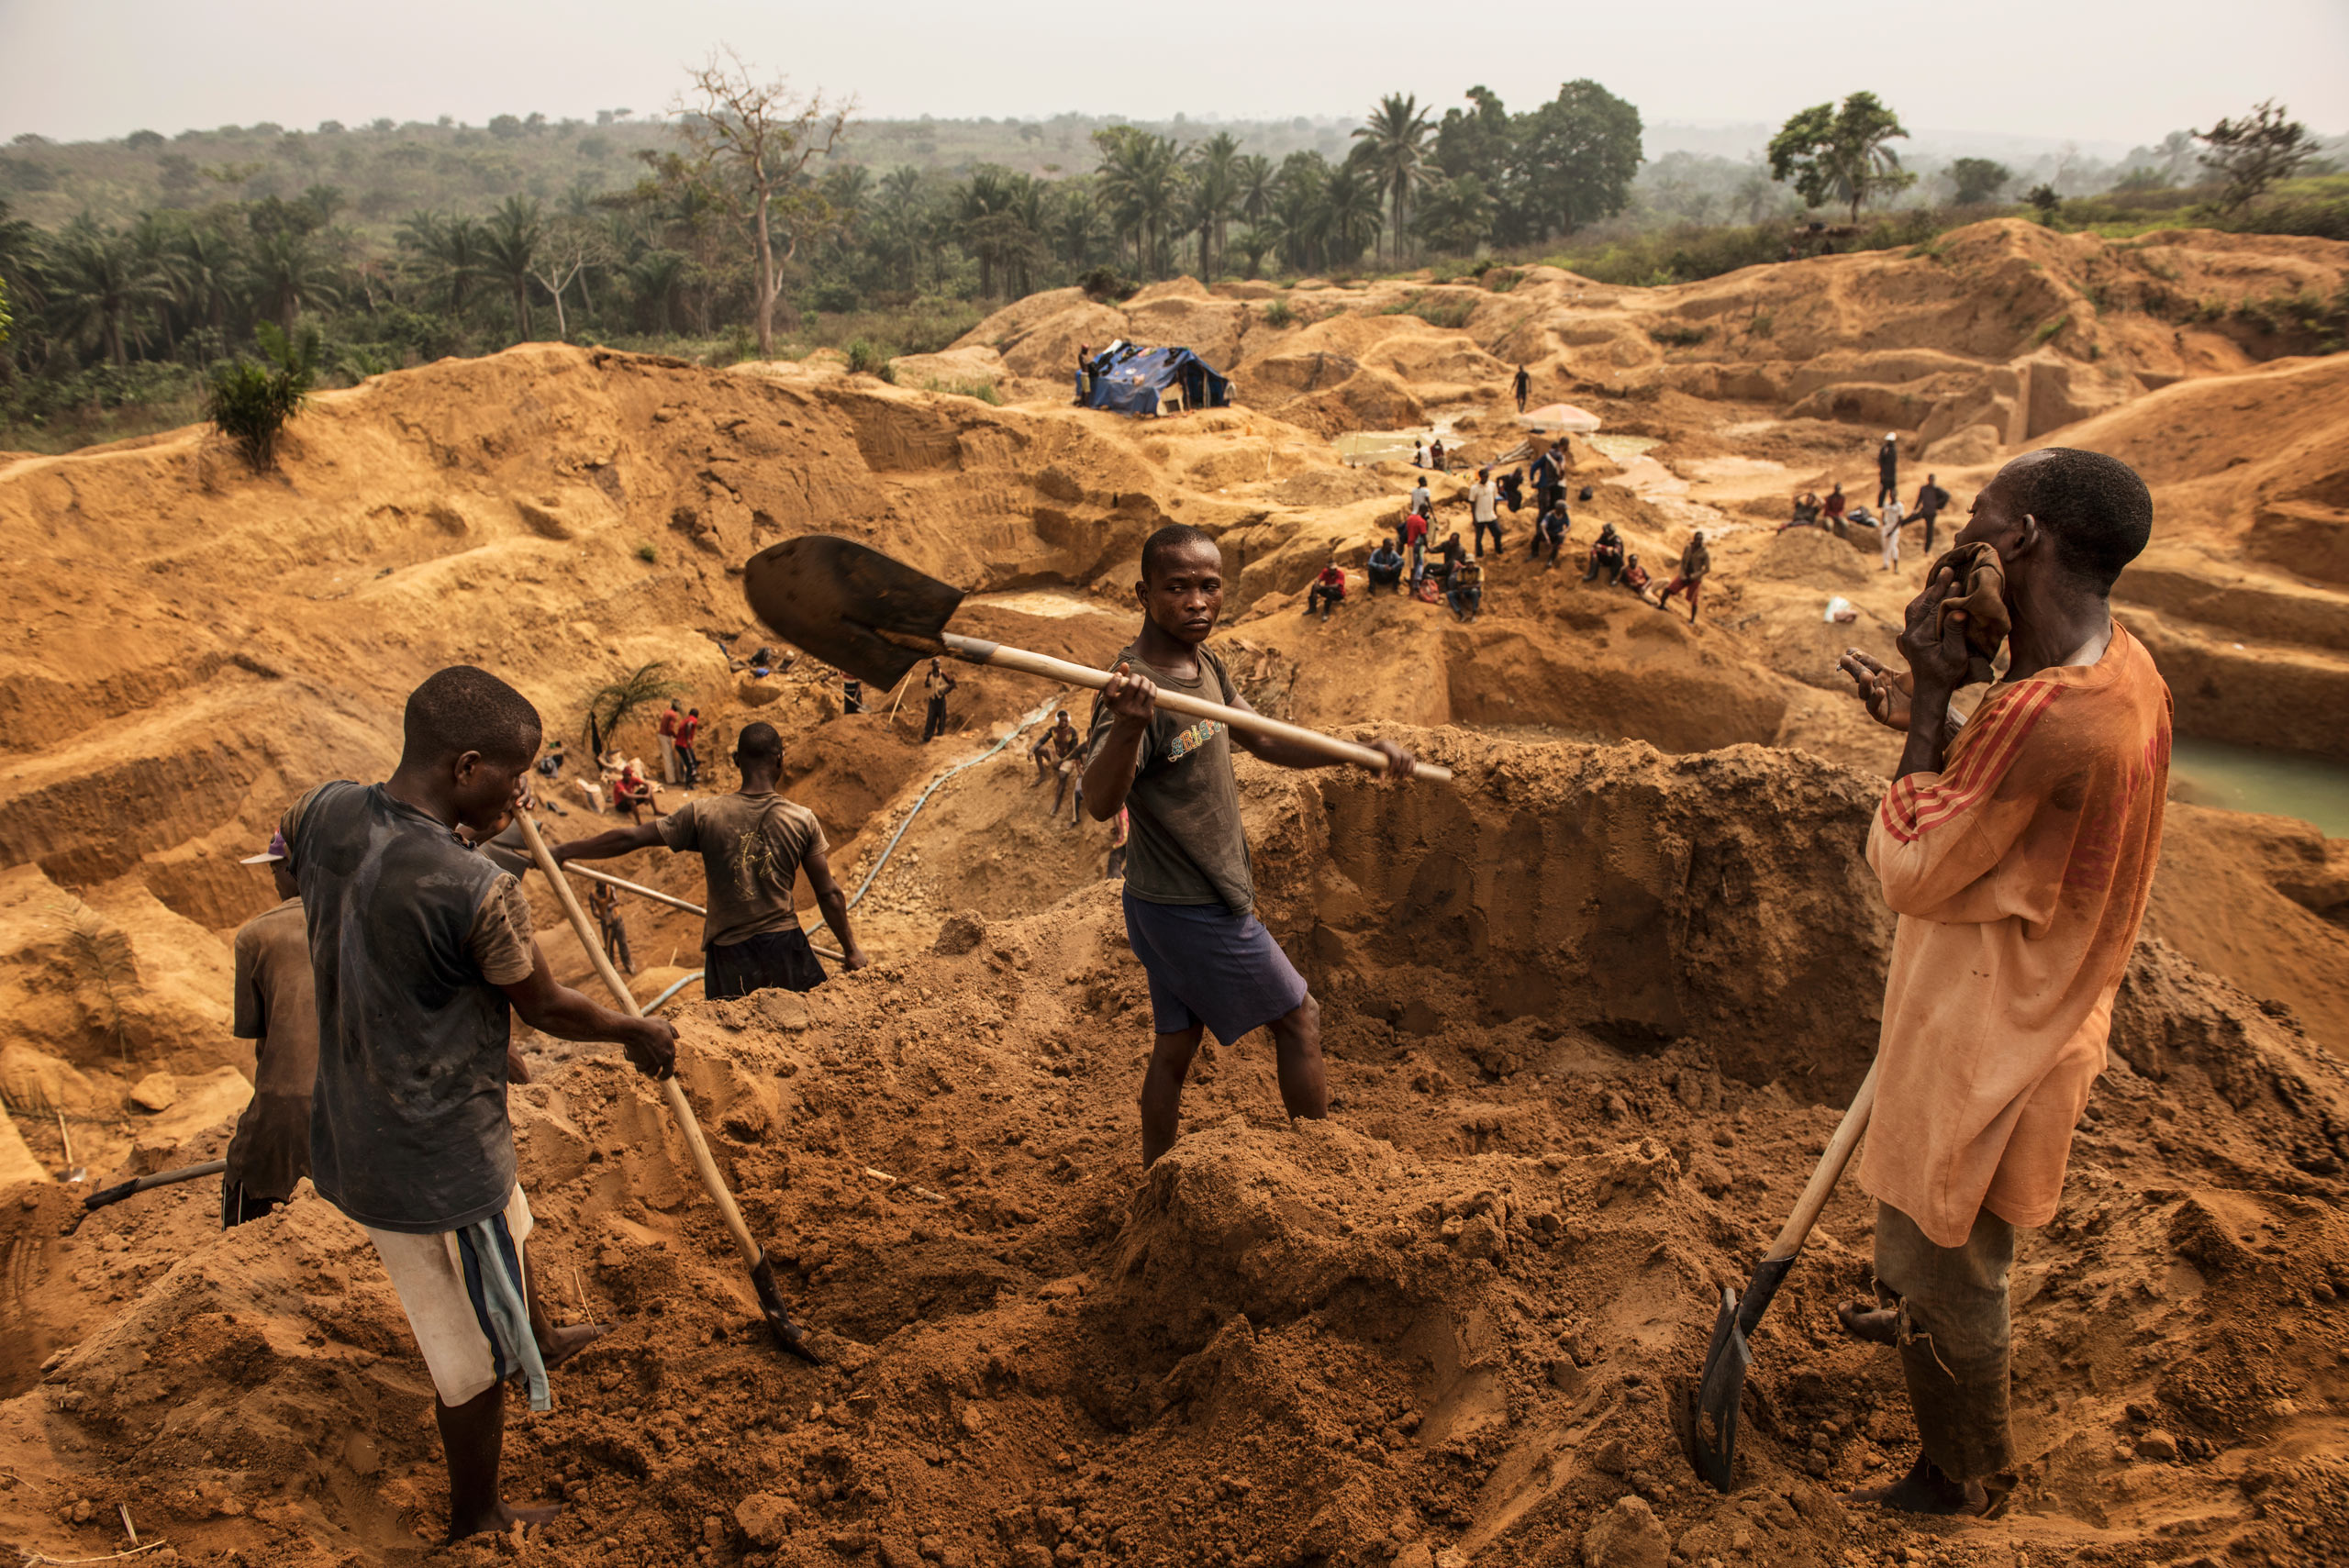 Congolese miners                                   working one of                                   the thousands of                                   artisanal mines                                   that cover the                                   southwest Democratic Republic of Congo. Aug. 9, 2015.                                                                       Diamond buyers and manufacturers in the west are trying to find a way to make the diamond industry cleaner and more responsibly-sourced, in order to combat human rights abuses, child labor, the degradation of the environment, and unfair trade practices.